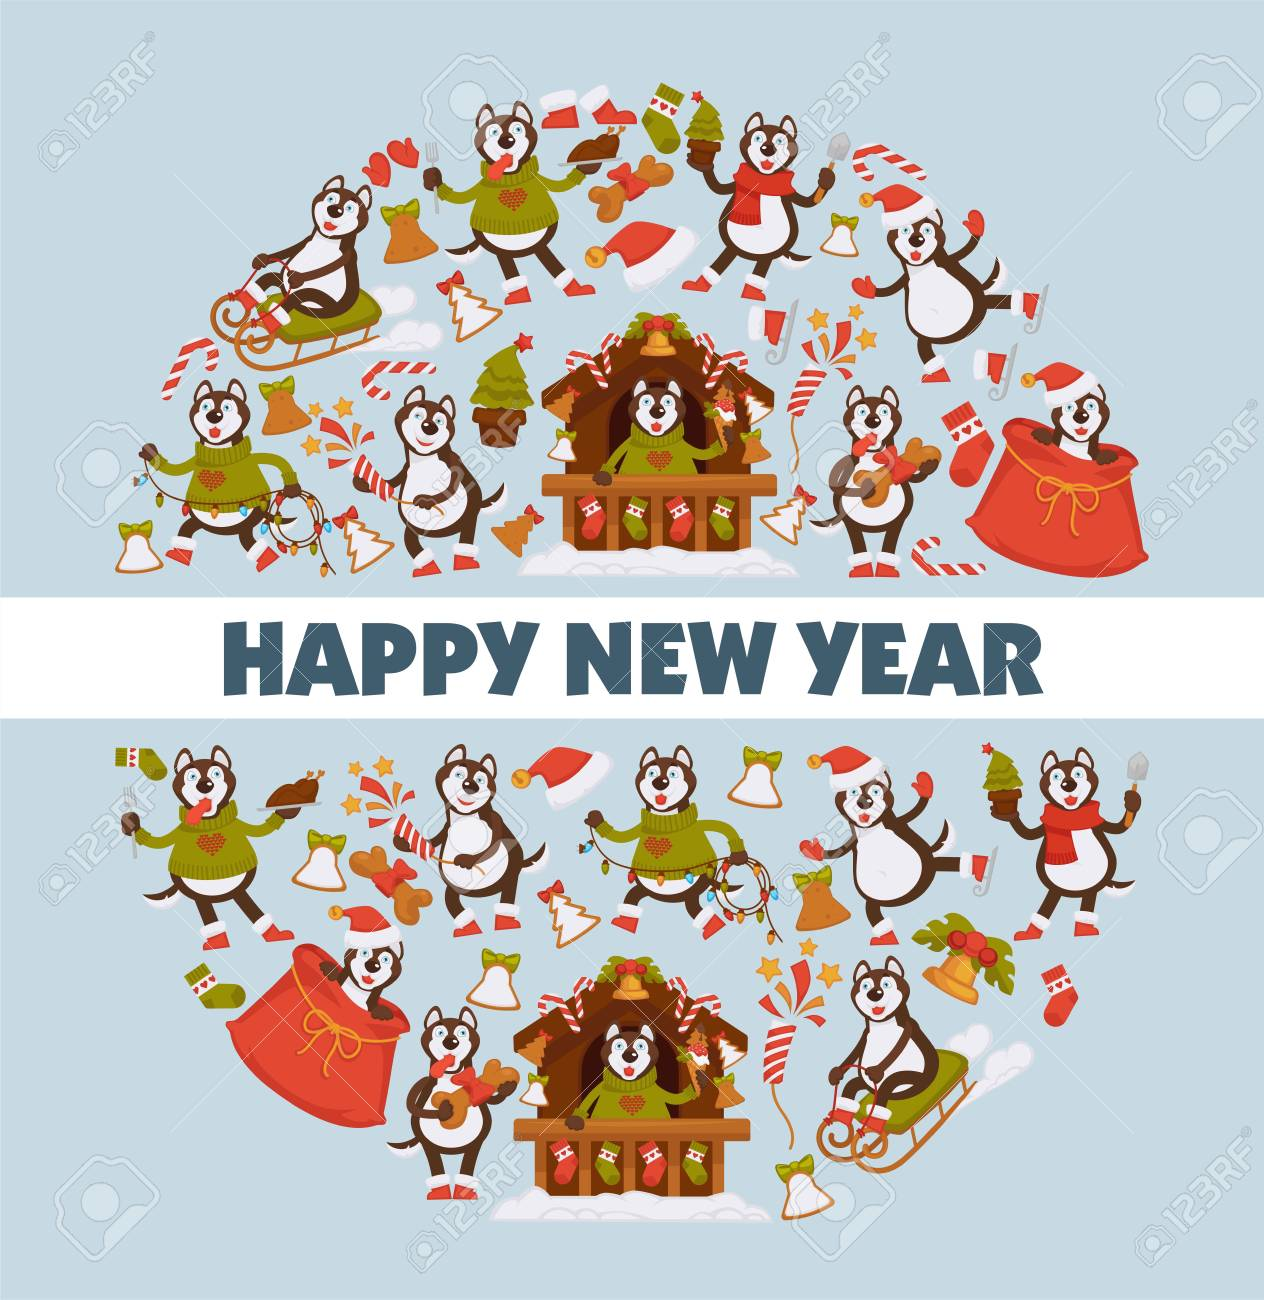 happy new year 2018 cartoon dog celebrating holidays greeting card design template stock vector